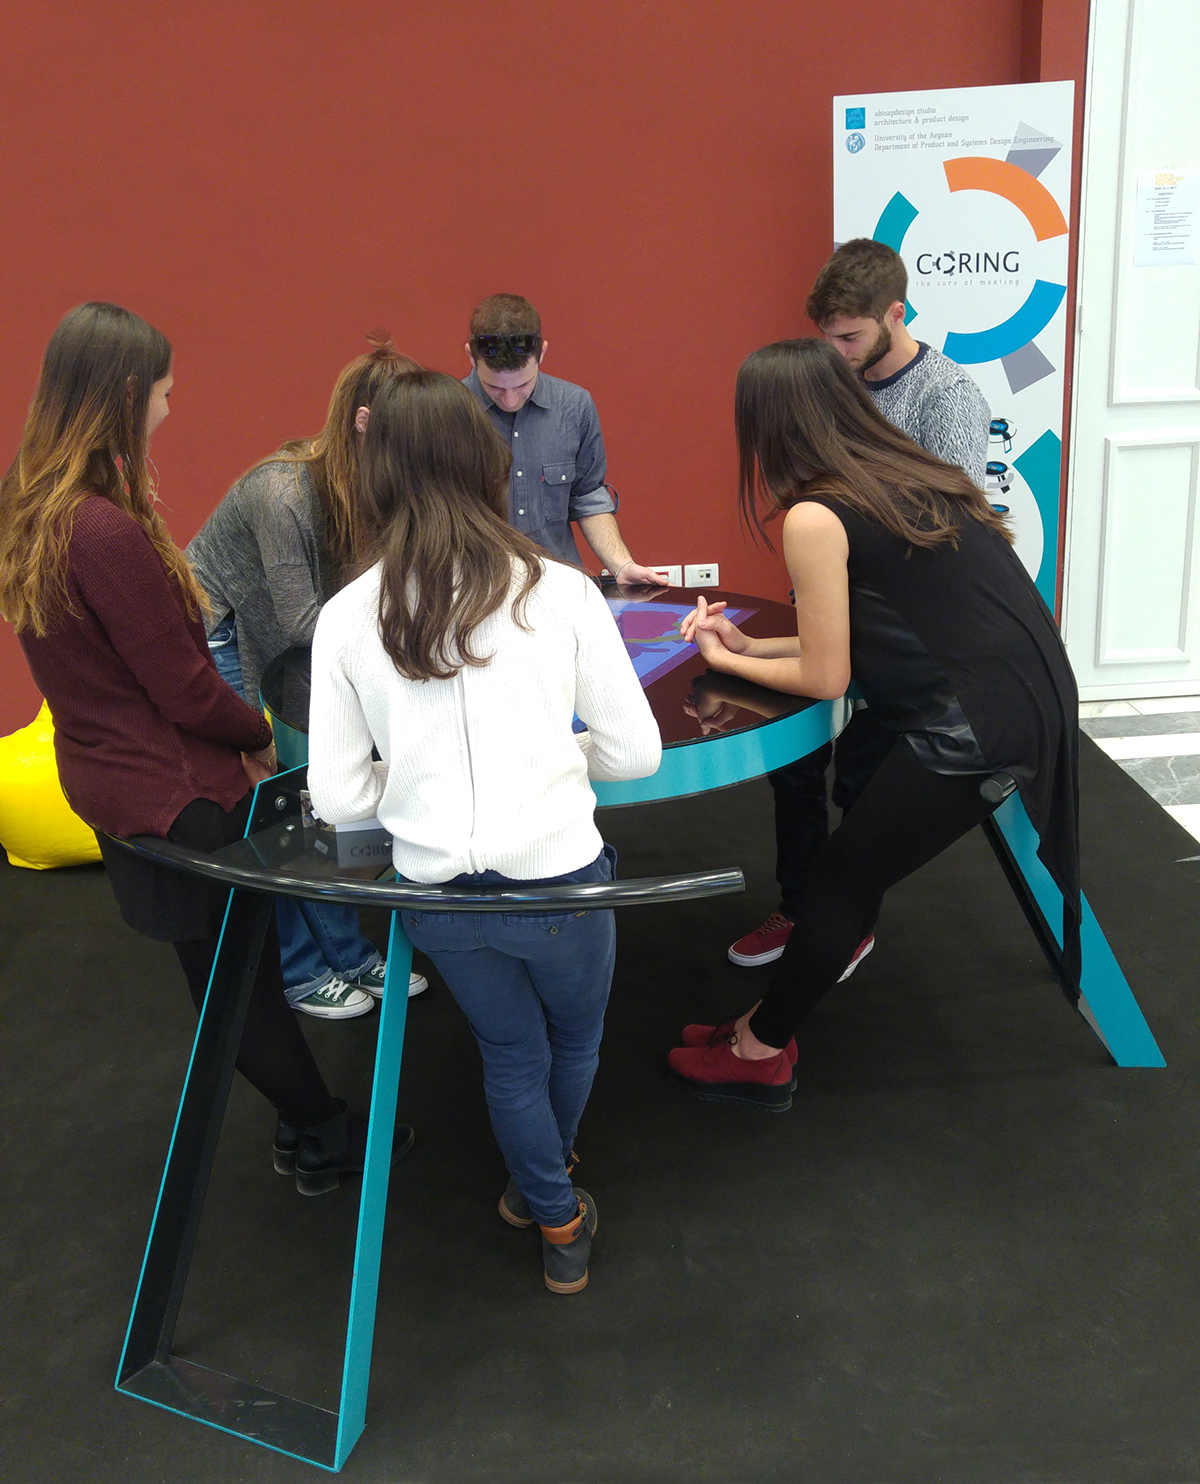 meeting interactive Collaboration furniture business innovation touch rotation design Office